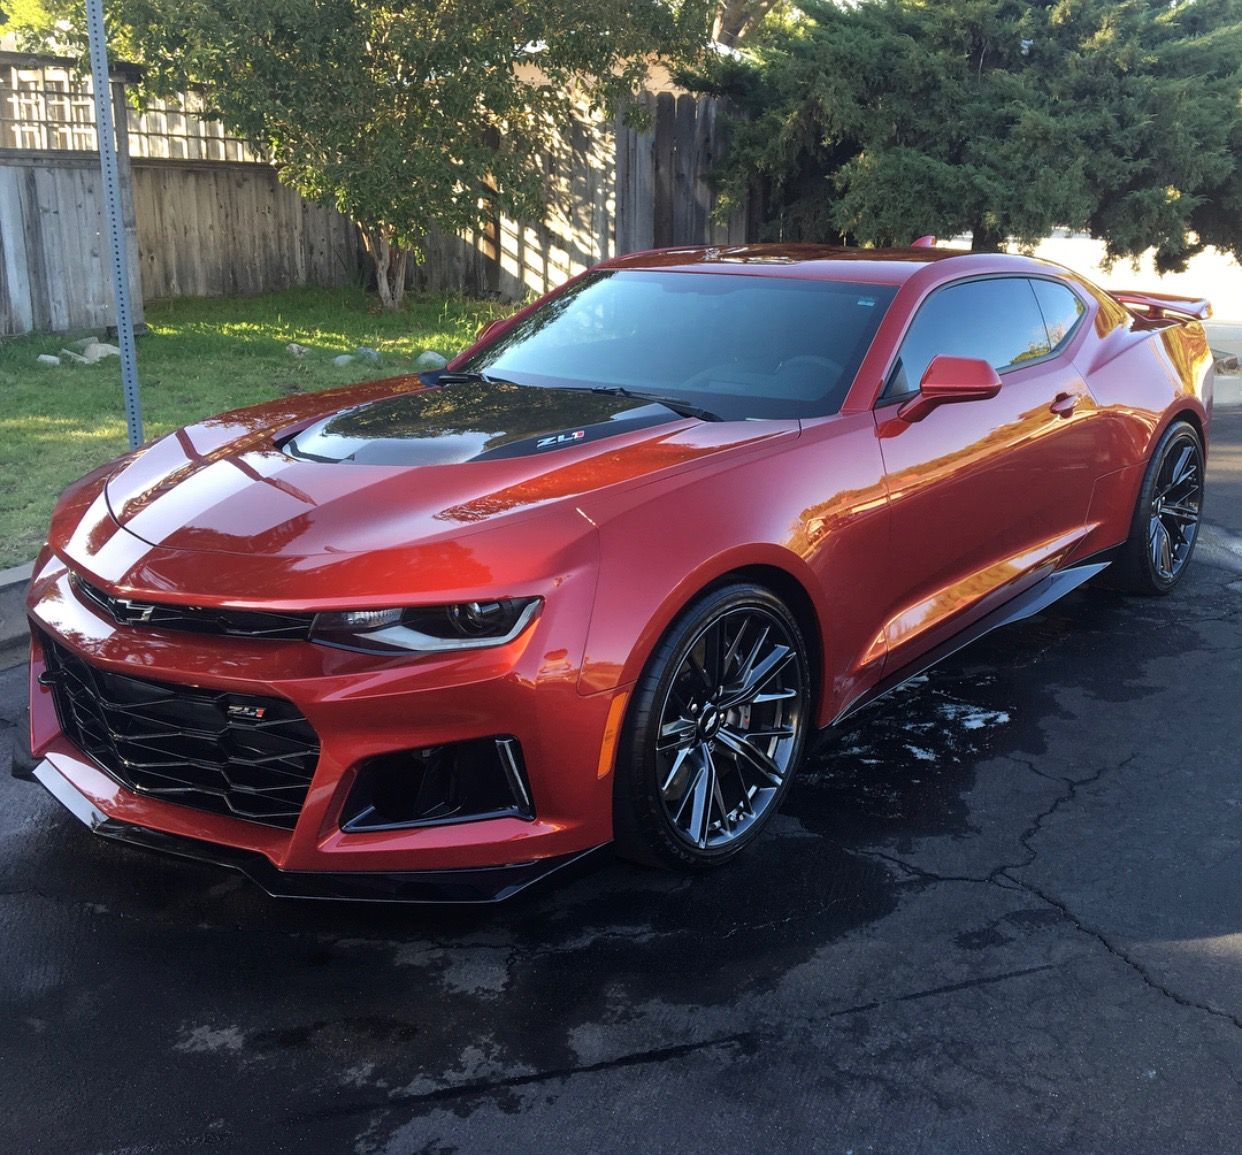 Chevrolet Camaro ZL1 painted in Garnet Red Photo taken by: @zl1_tommy on  Instagram